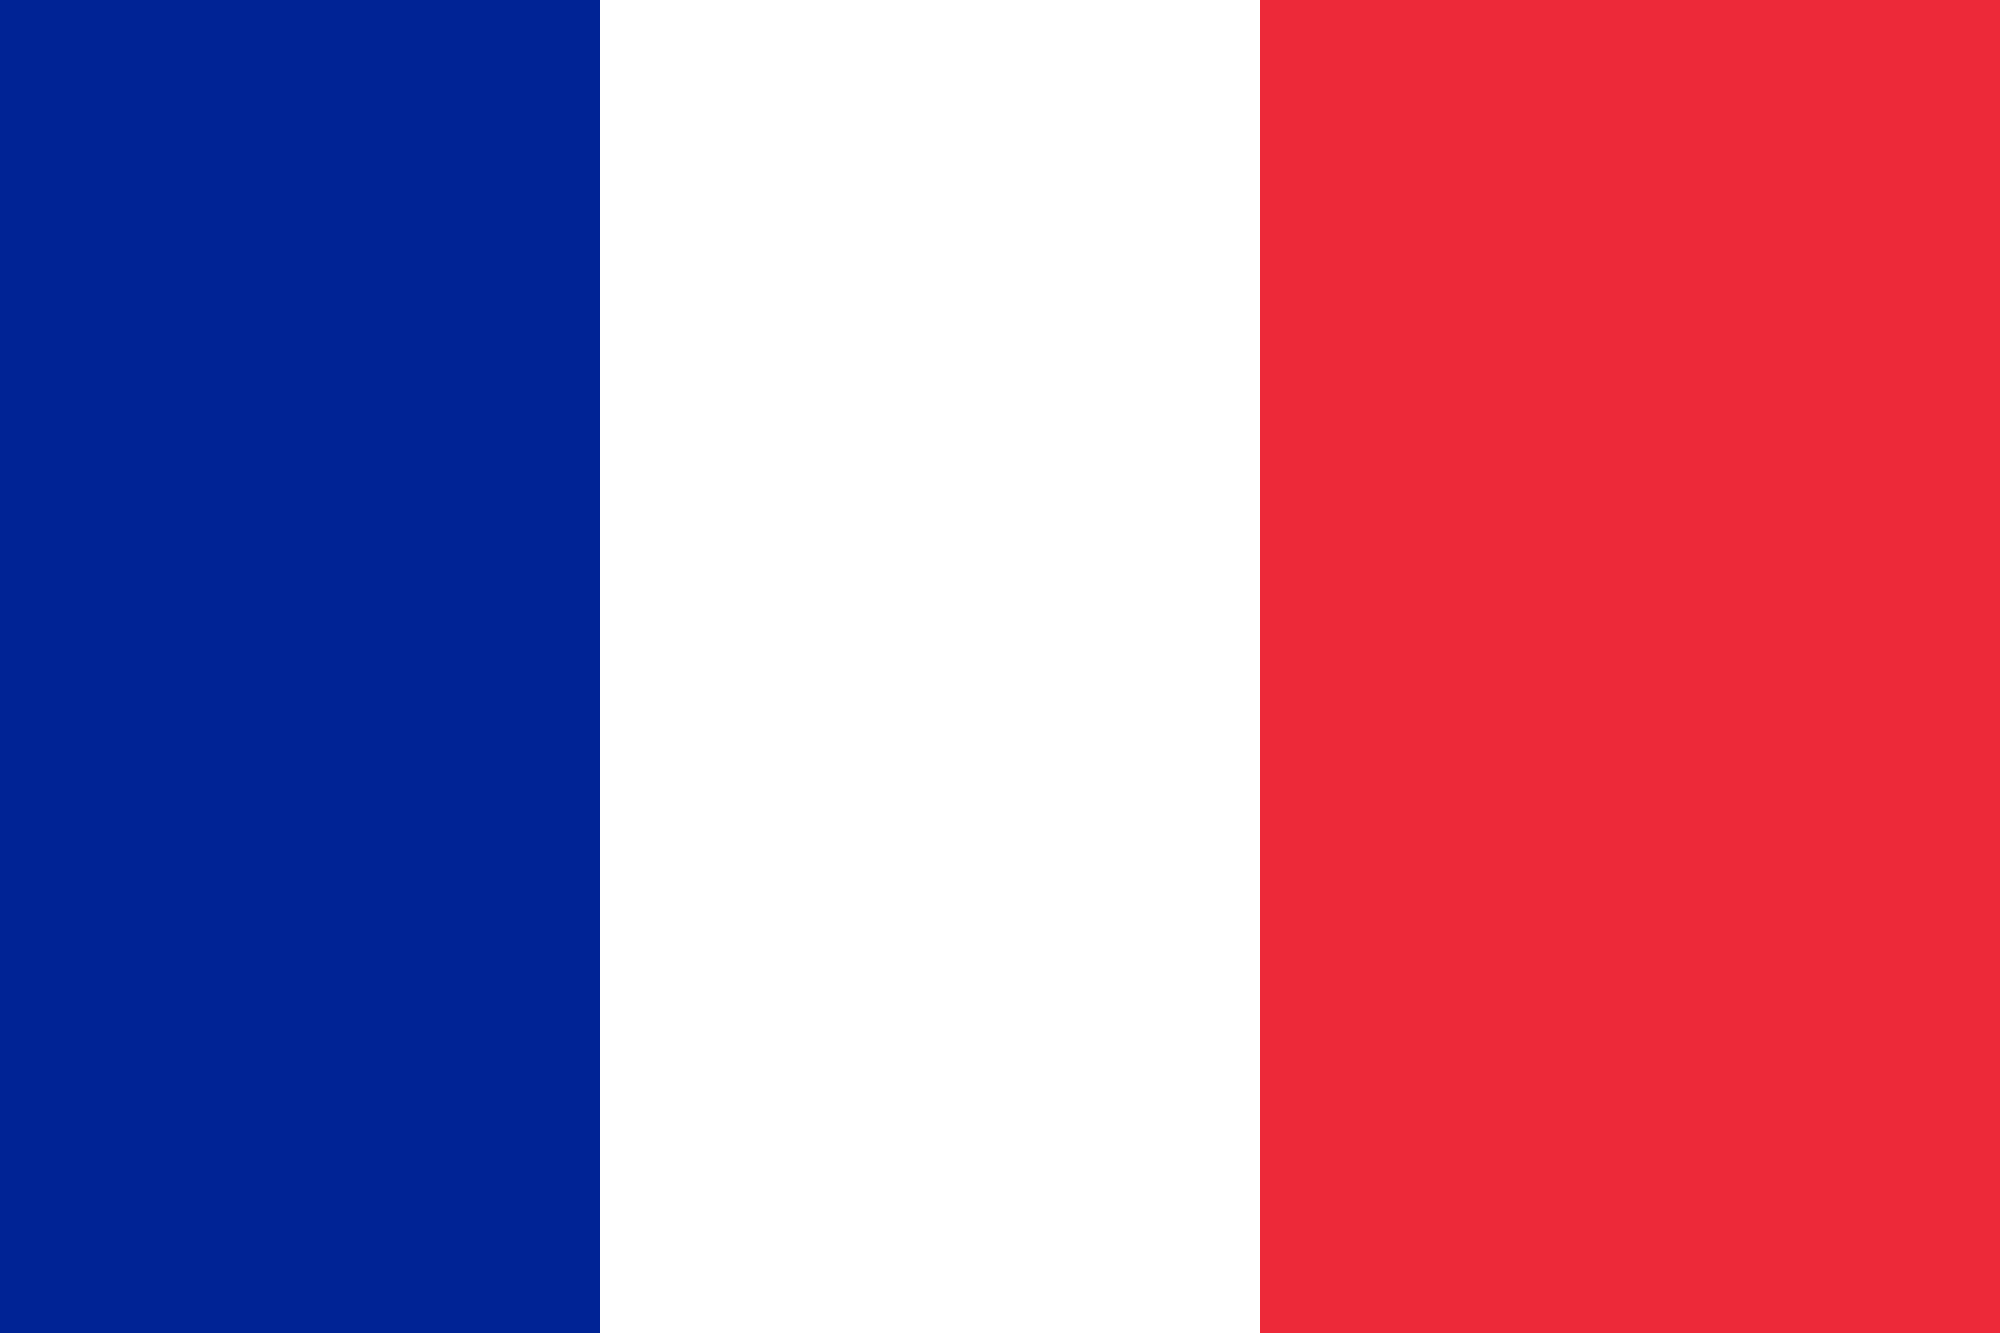 Variant flag of France